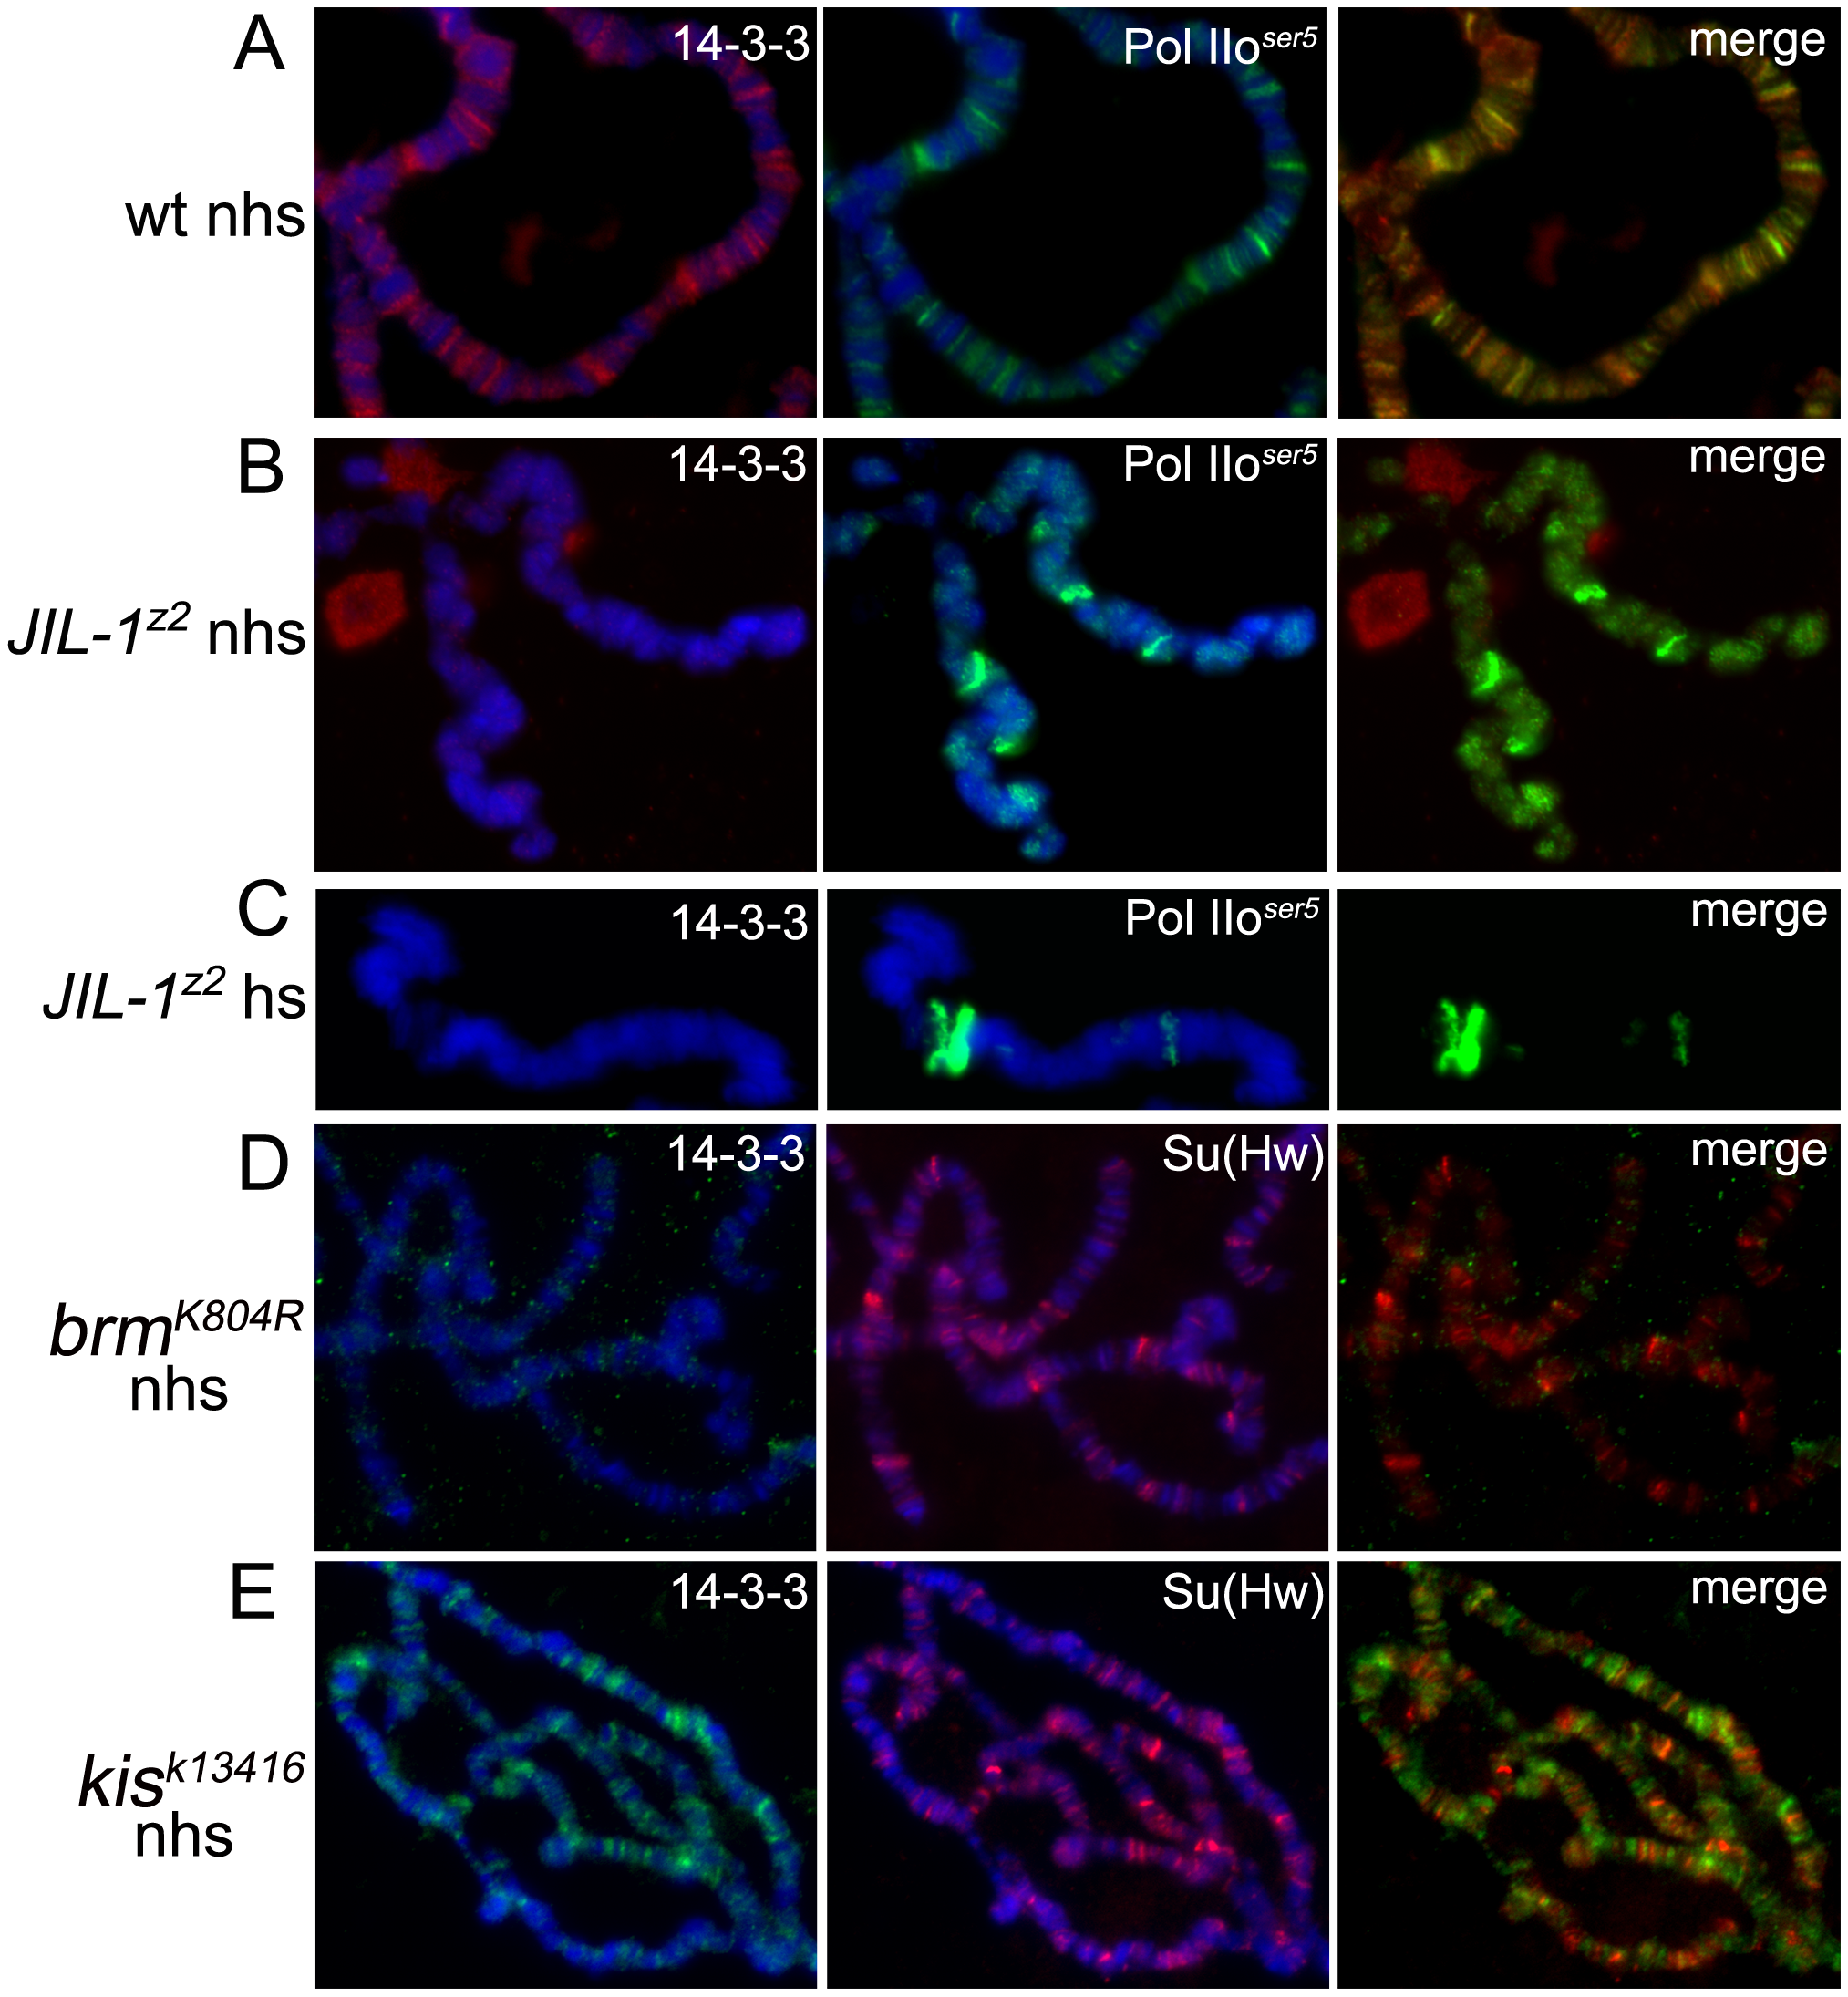 Binding of 14-3-3 to polytene chromosomes is dependent on phosphorylation of H3S10 by JIL-1.